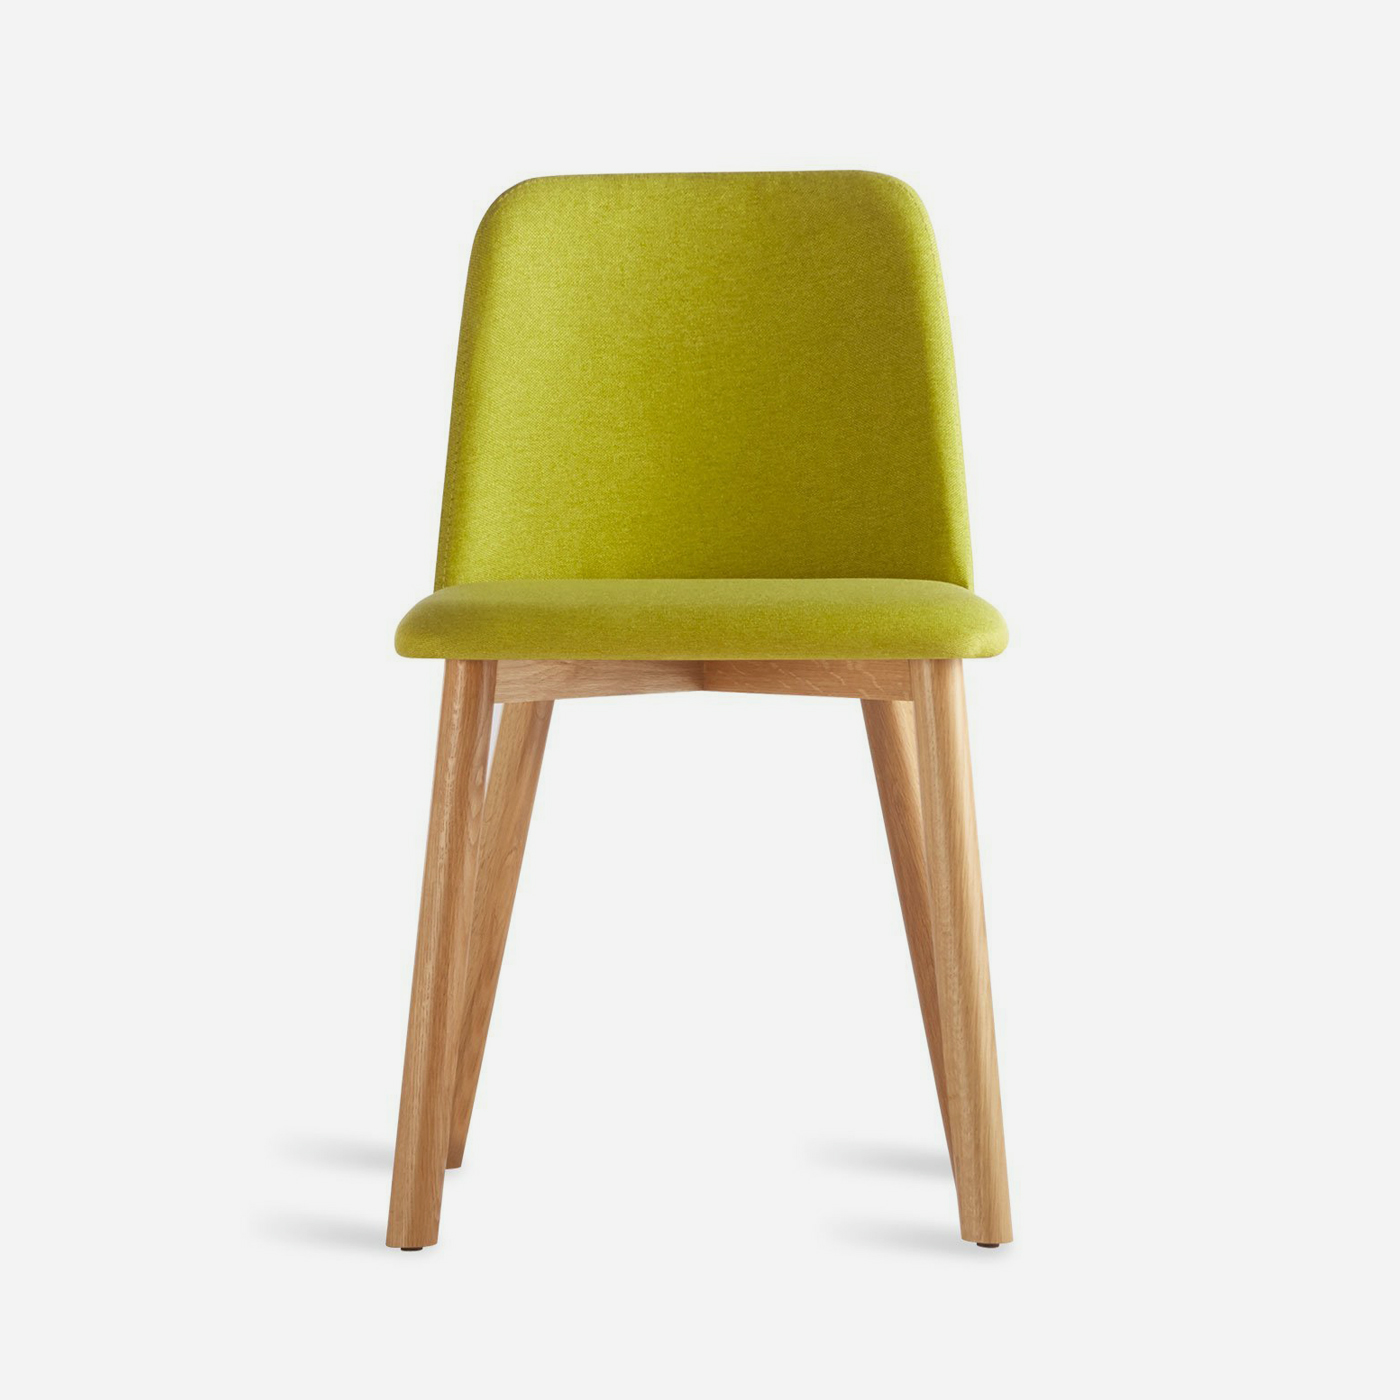 Blu dot chip dining chair melody arredamenti for Melody arredamenti